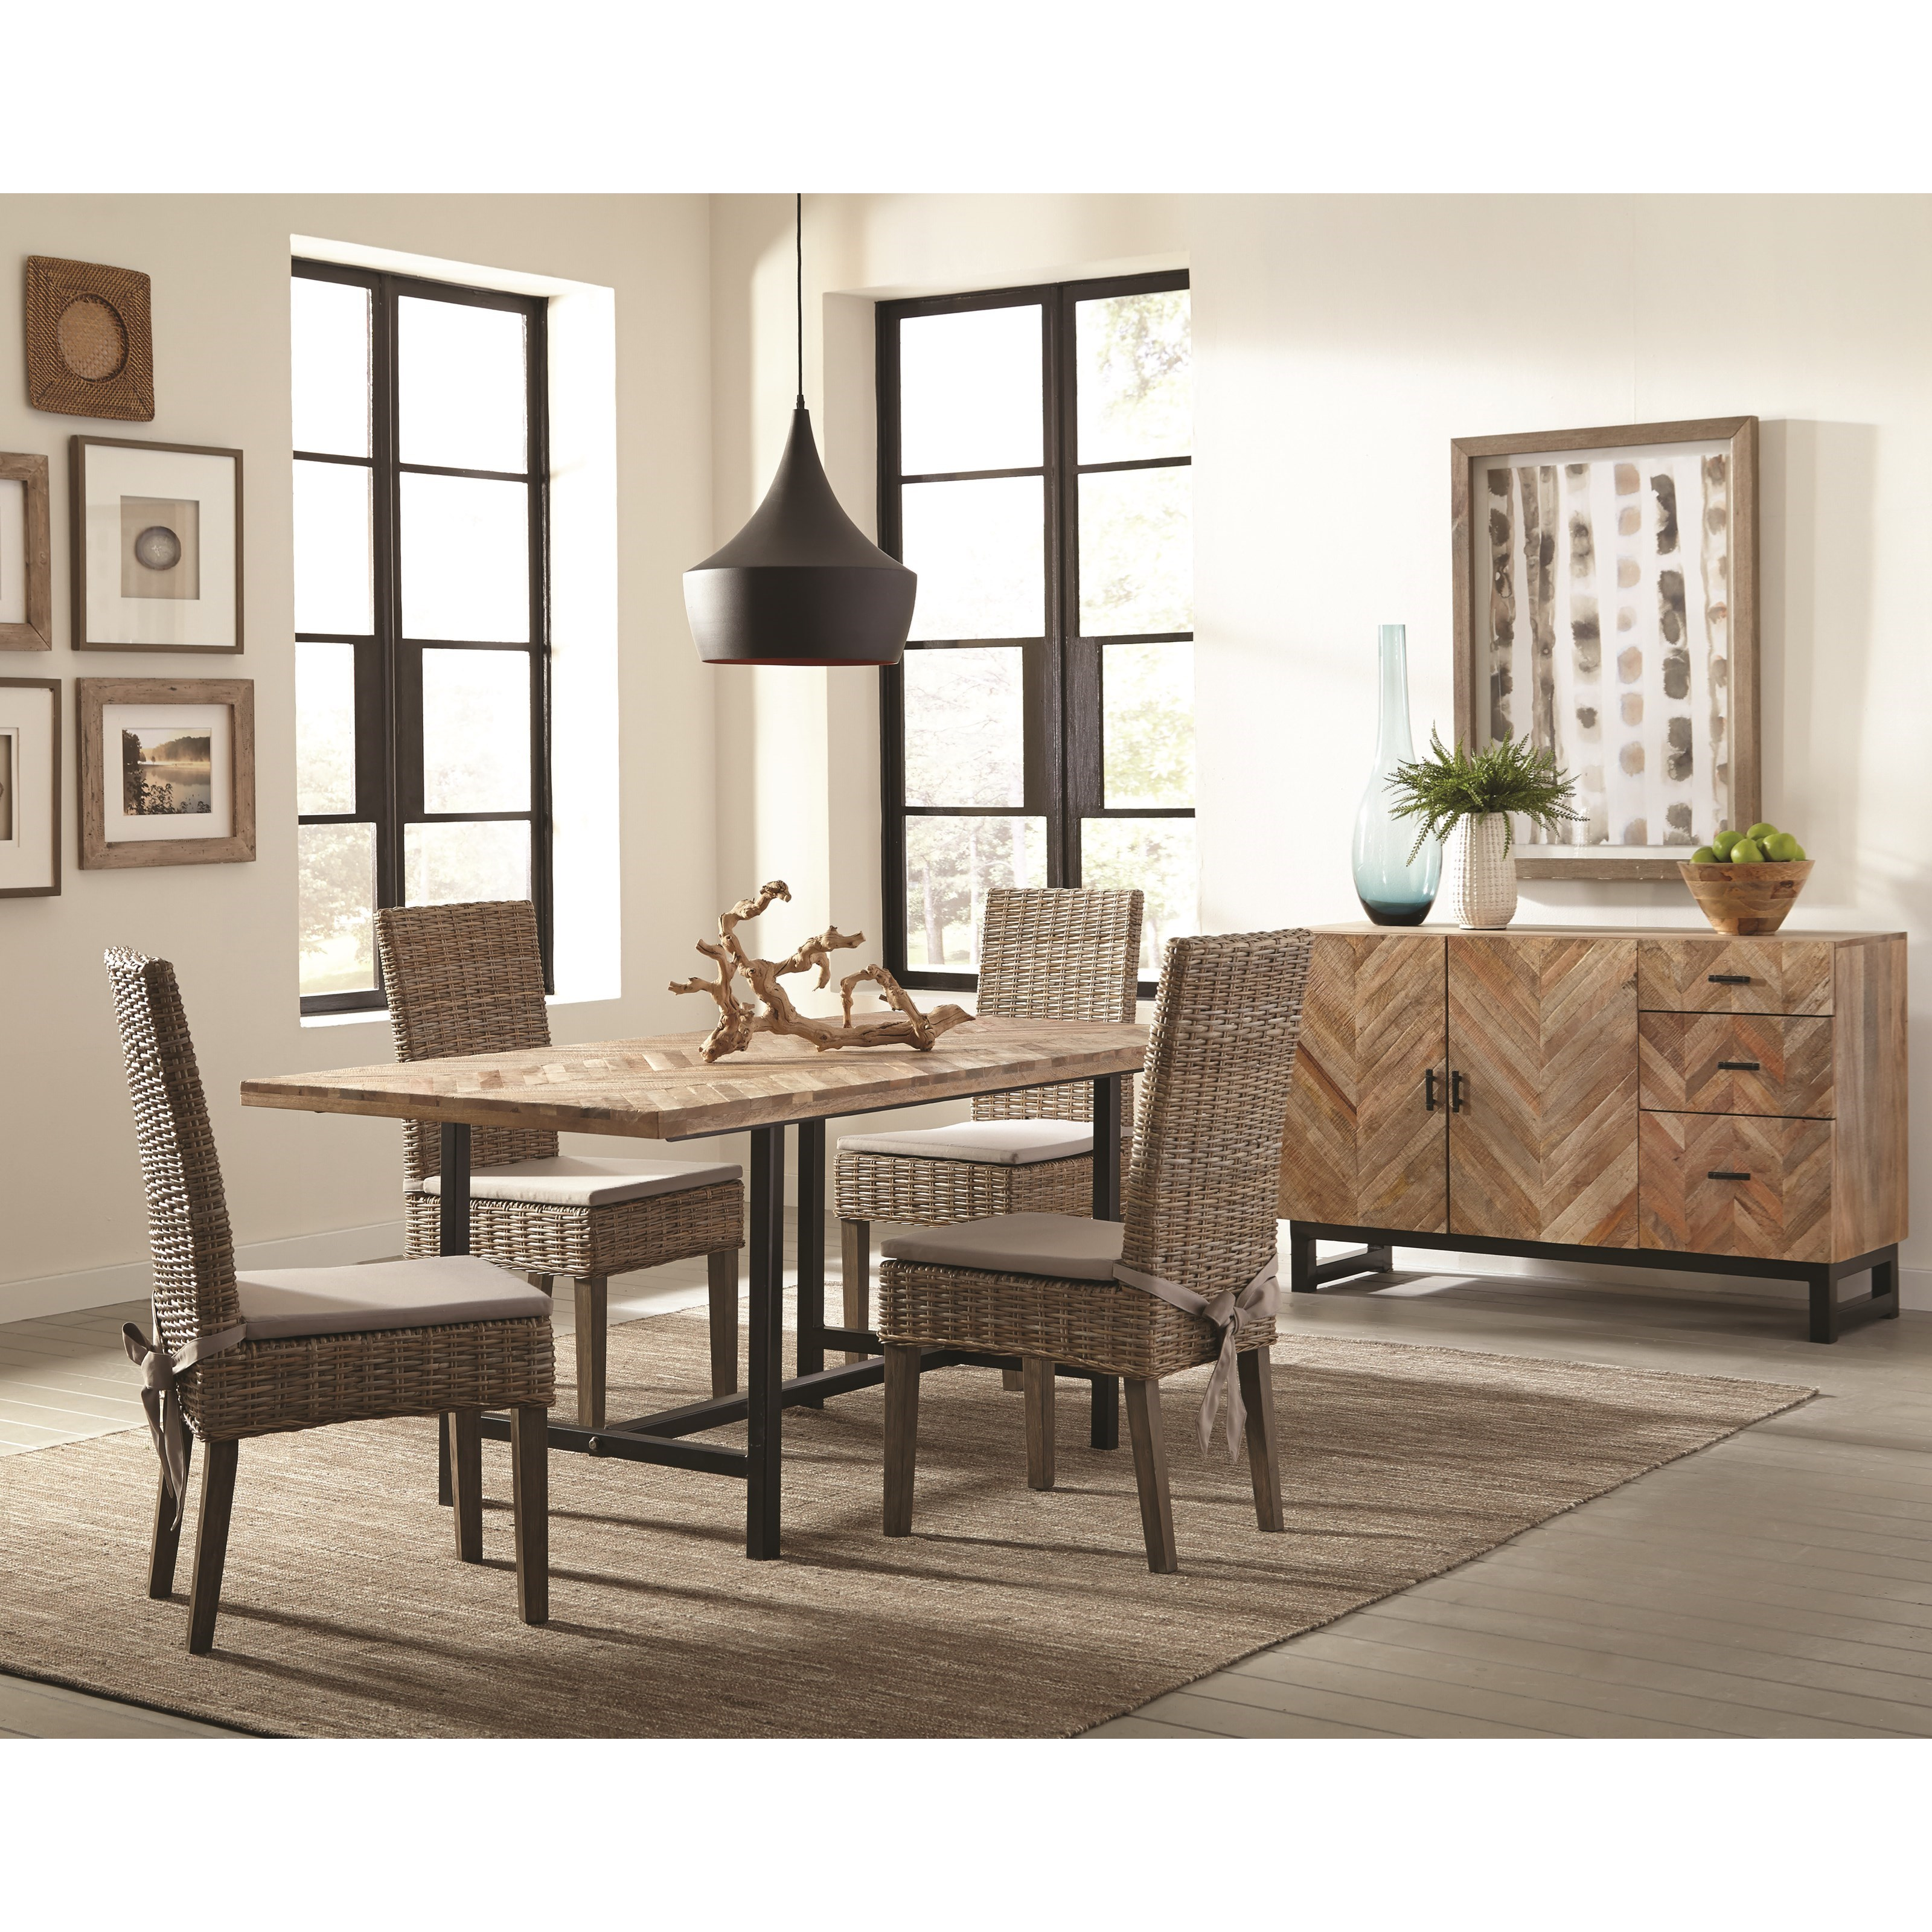 Rattan Chairs Thompson Rustic Dining Room Group With Rattan Chairs By Scott Living At Del Sol Furniture